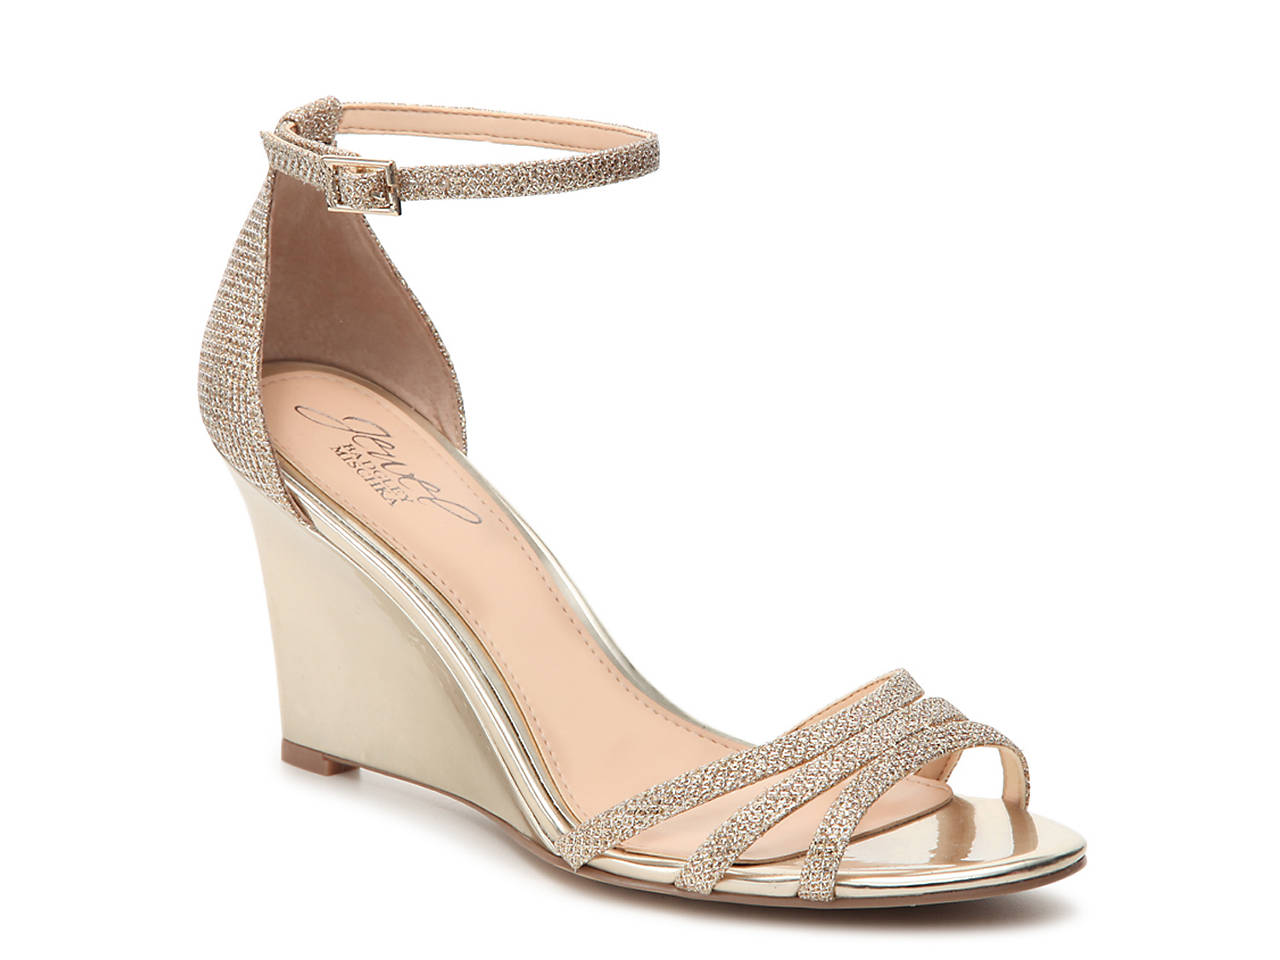 New Arrival Sale Online Badgley Mischka Metallic Crossover Sandals Cheap Sale Big Discount From China Online Y4BcQhk